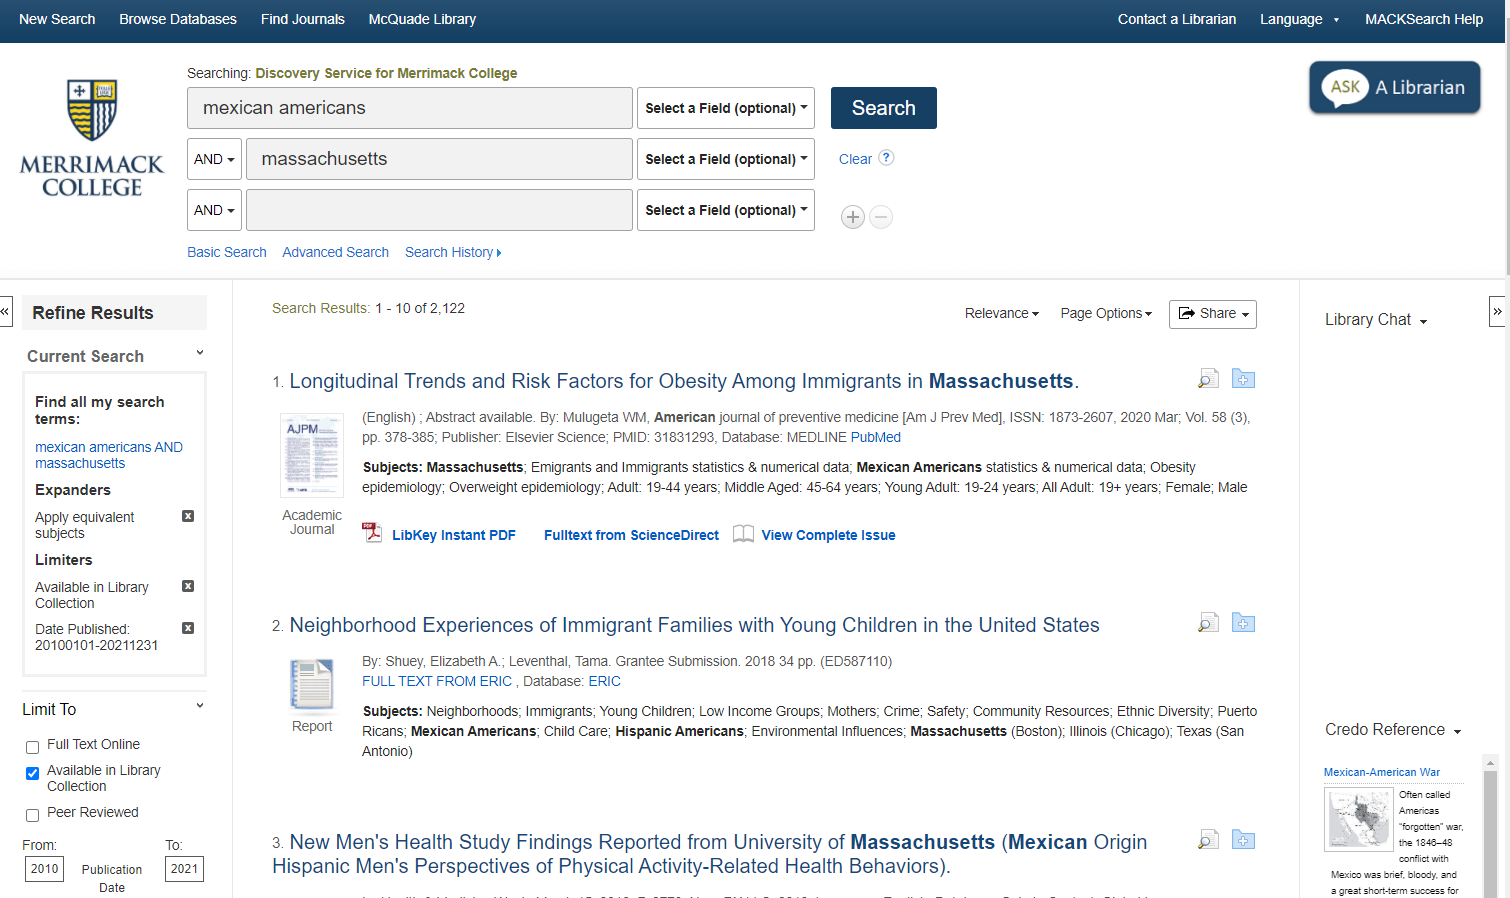 Sample search result screen for MACKsearch